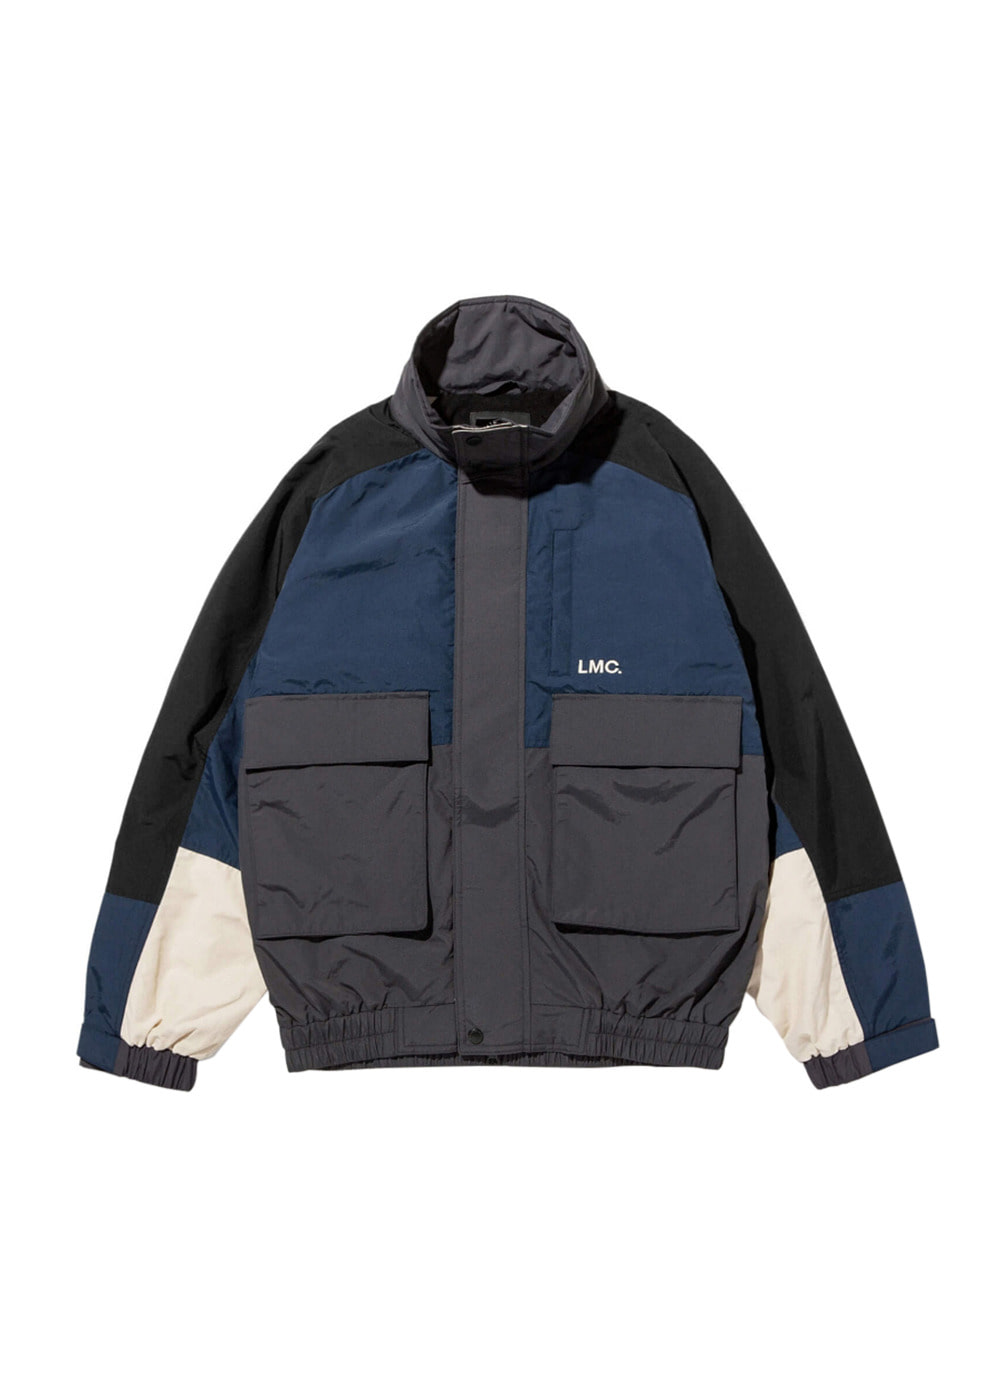 LMC FRONT POCKET WINDBREAKER black